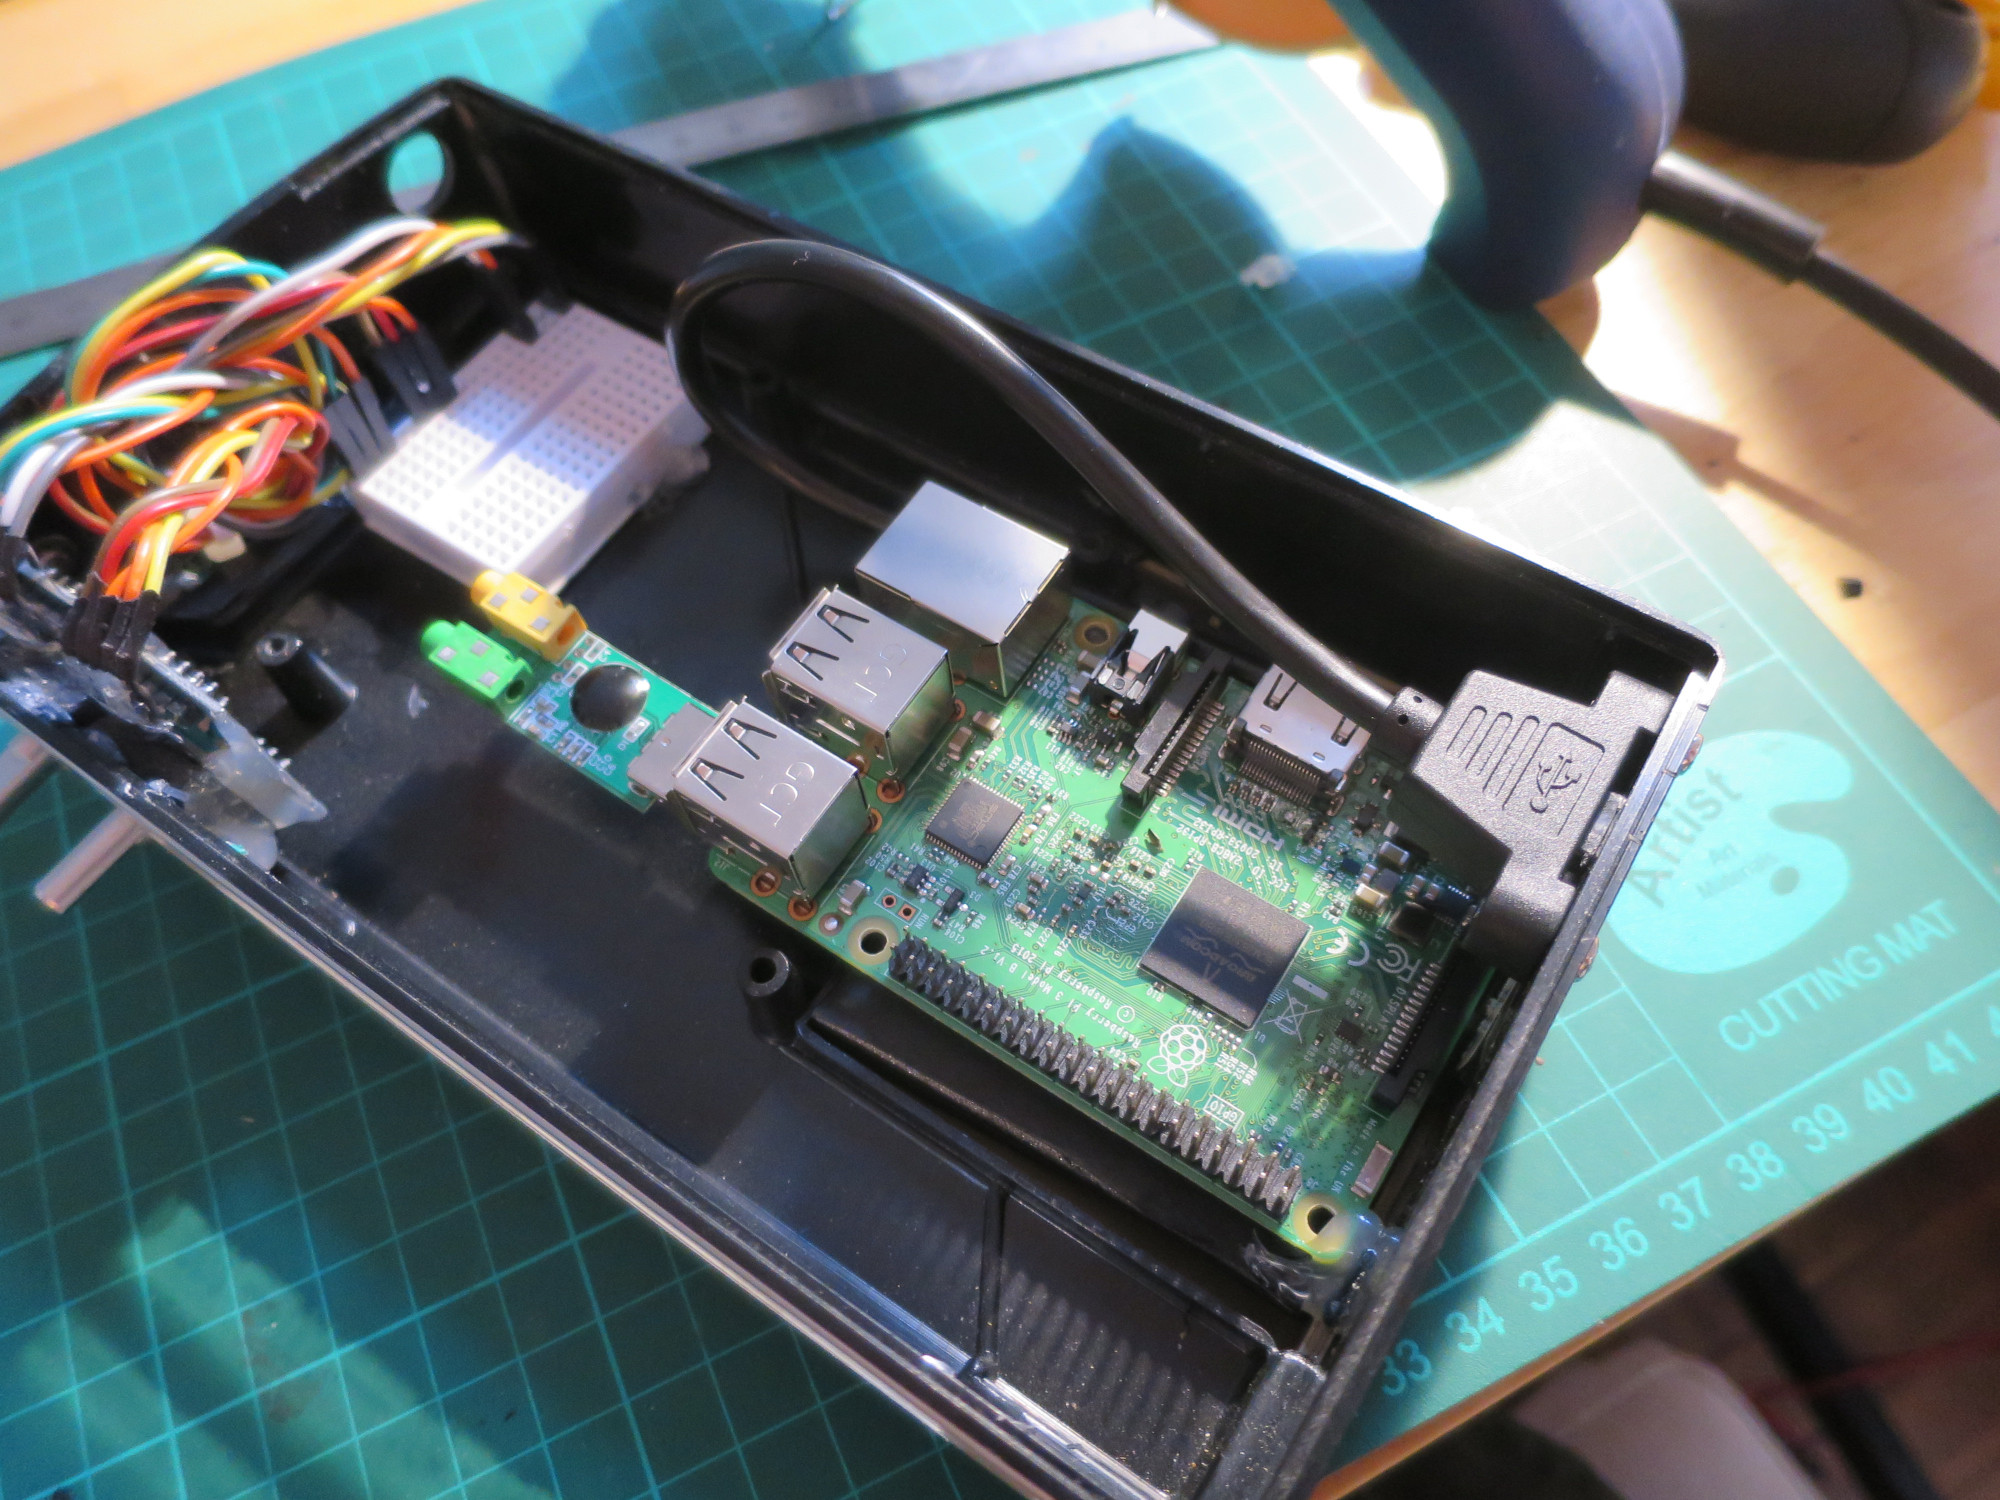 With the speaker removed, we can see an elegant power solution which offers more flexibility over the Pi's location